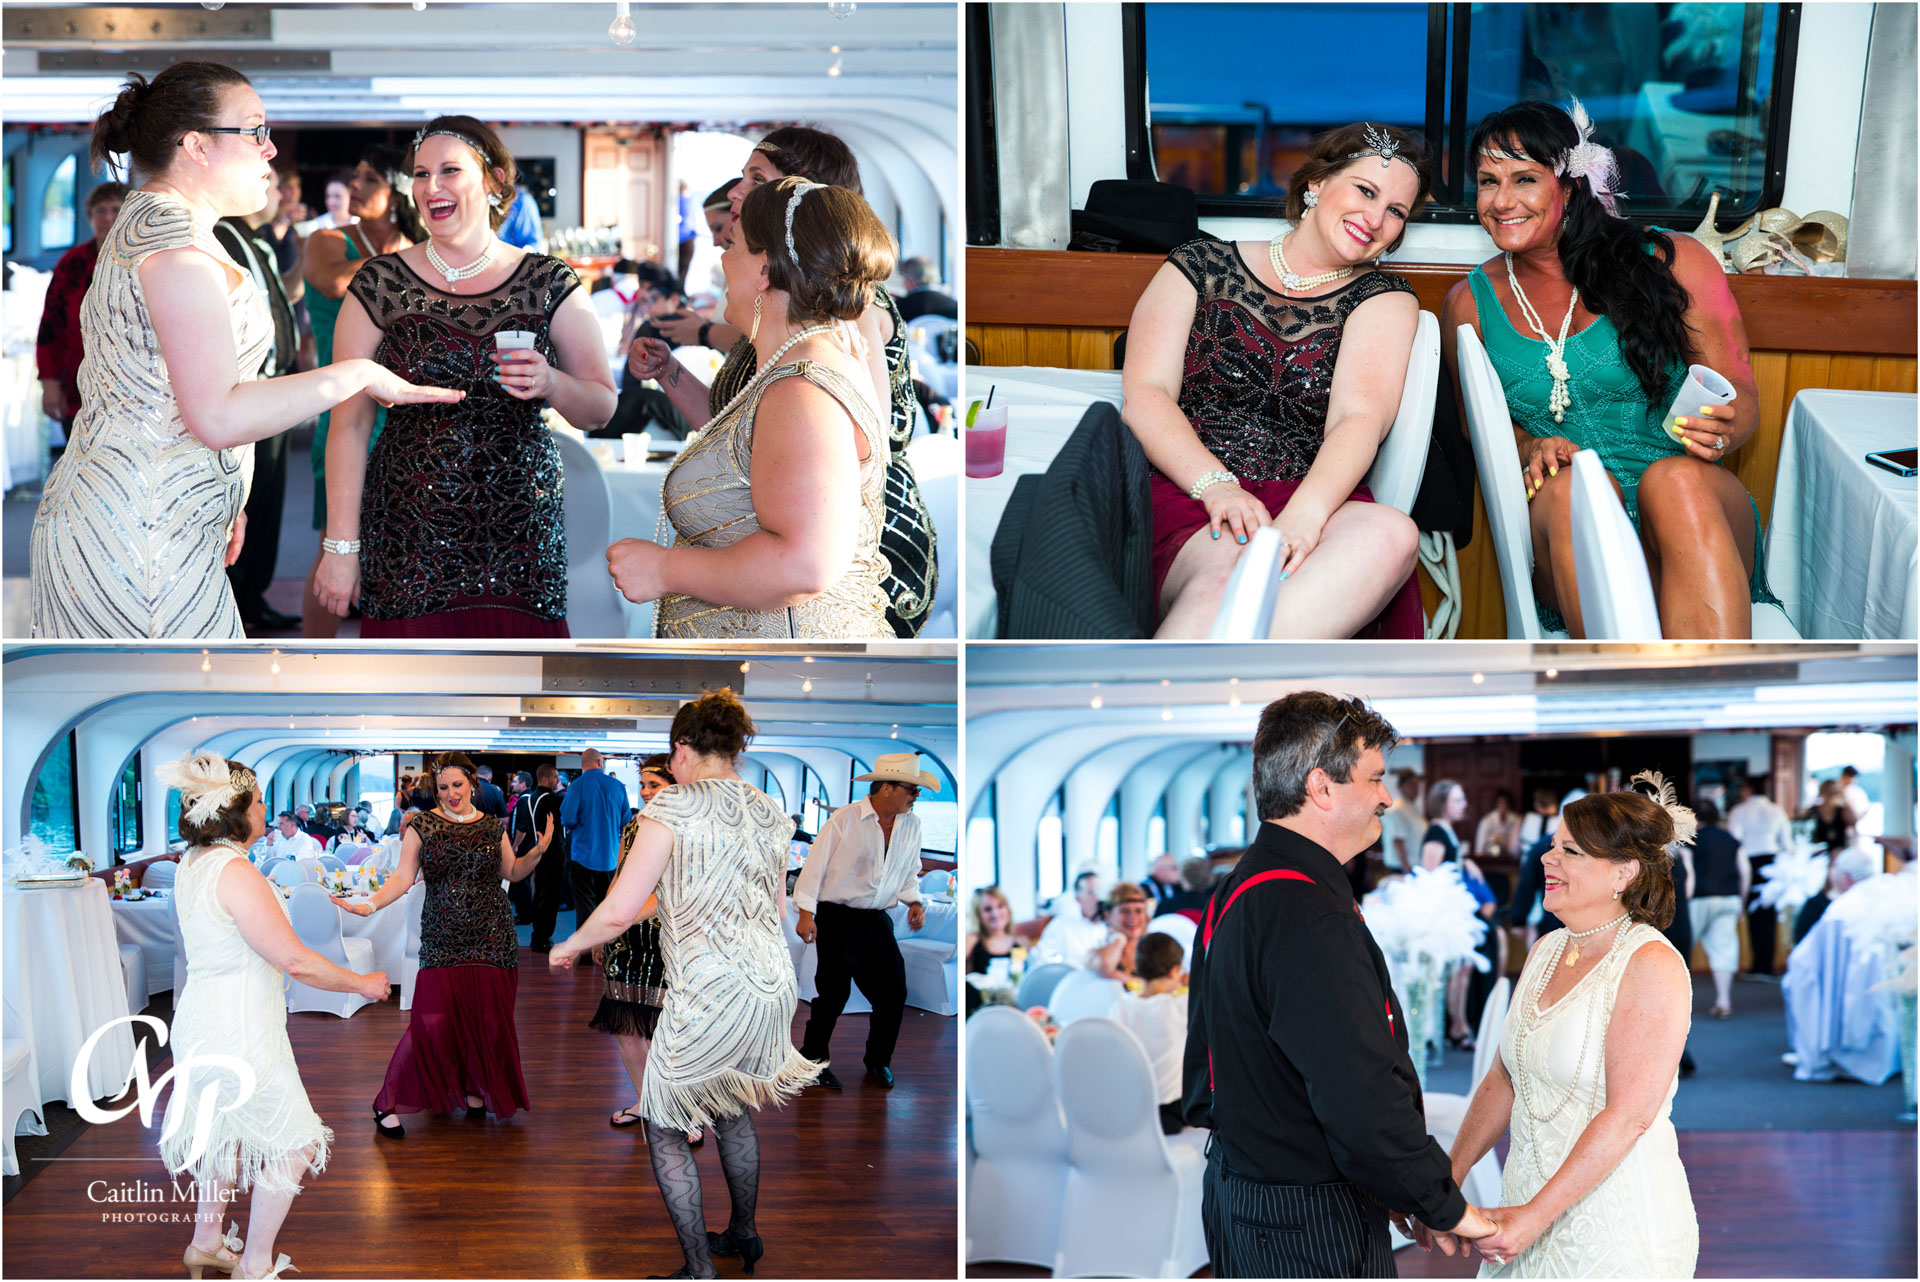 bombard-32.jpg from Jan and Robert's vow renewal on shoreline Cruise's Adirondac Boat on Lake George, NY by Saratoga Wedding Photographer Caitlin Miller Photography. Lake George Wedding Photographer. Stamford wedding photographer. Albany wedding photographer. Shoreline Cruises Wedding Photographer. Saratoga Wedding Photographer